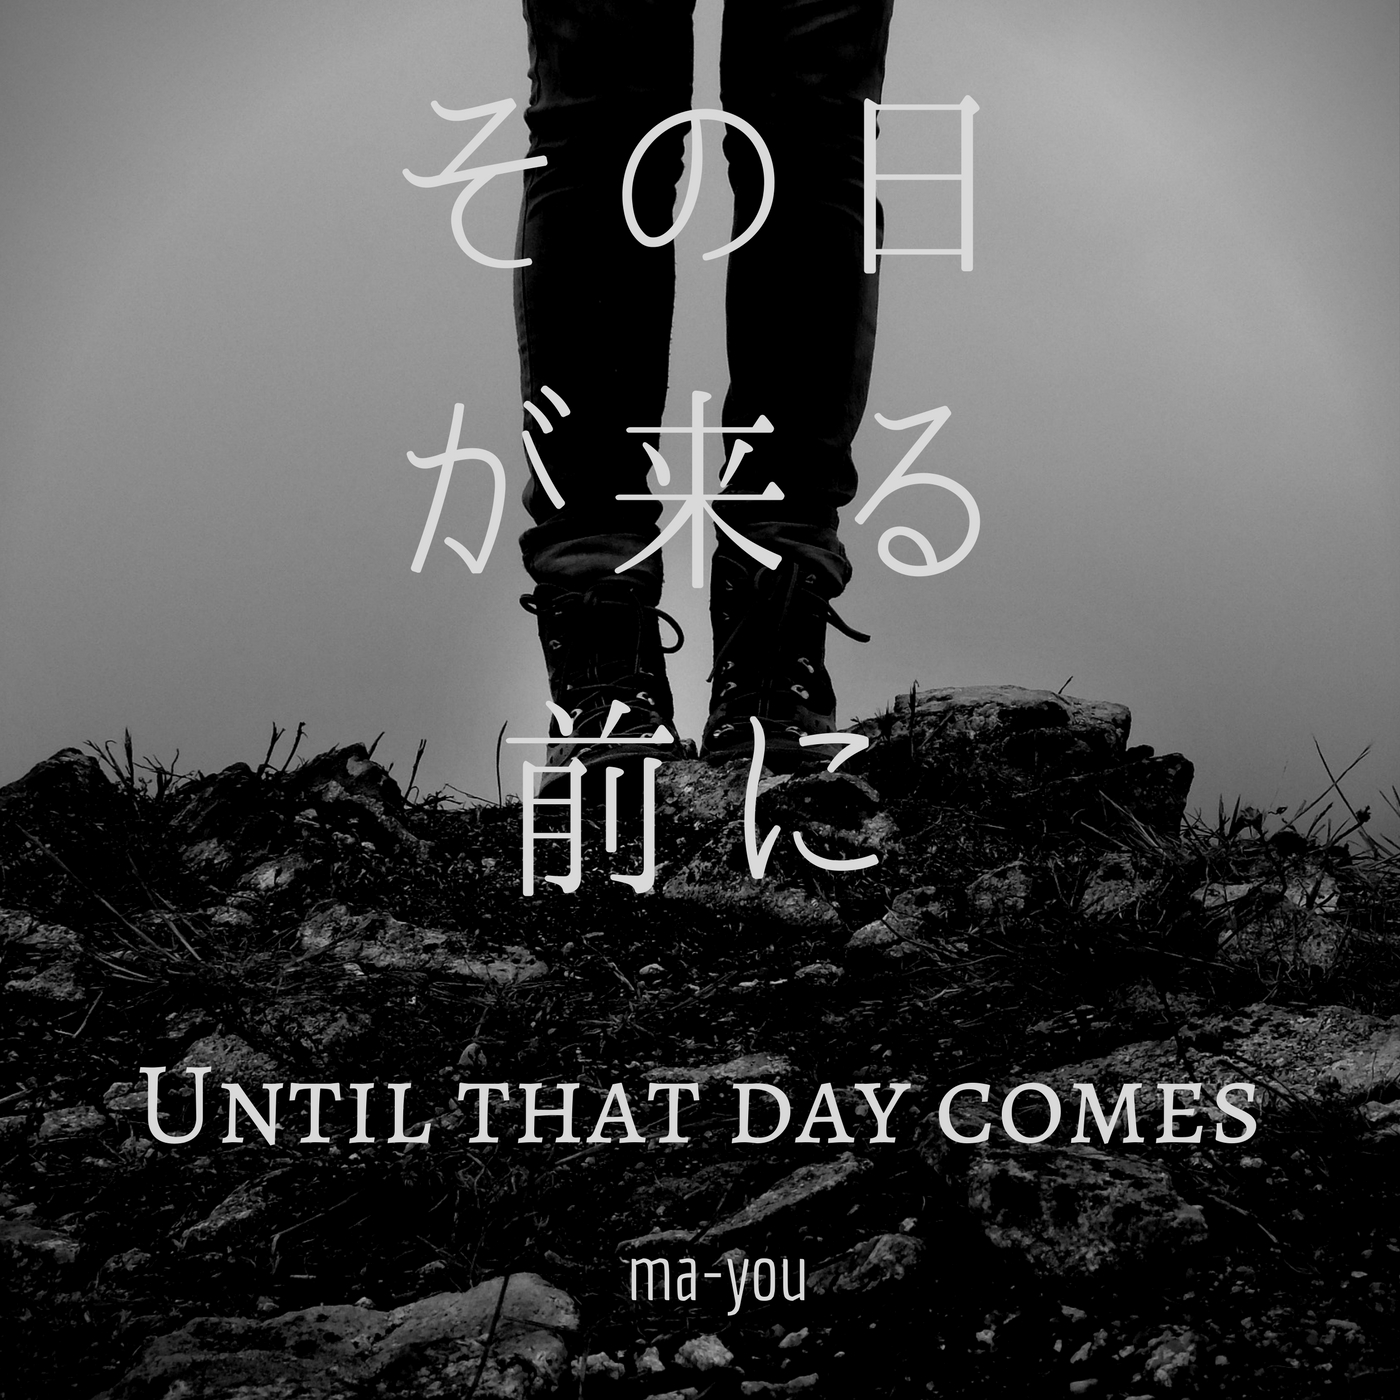 until that day comes